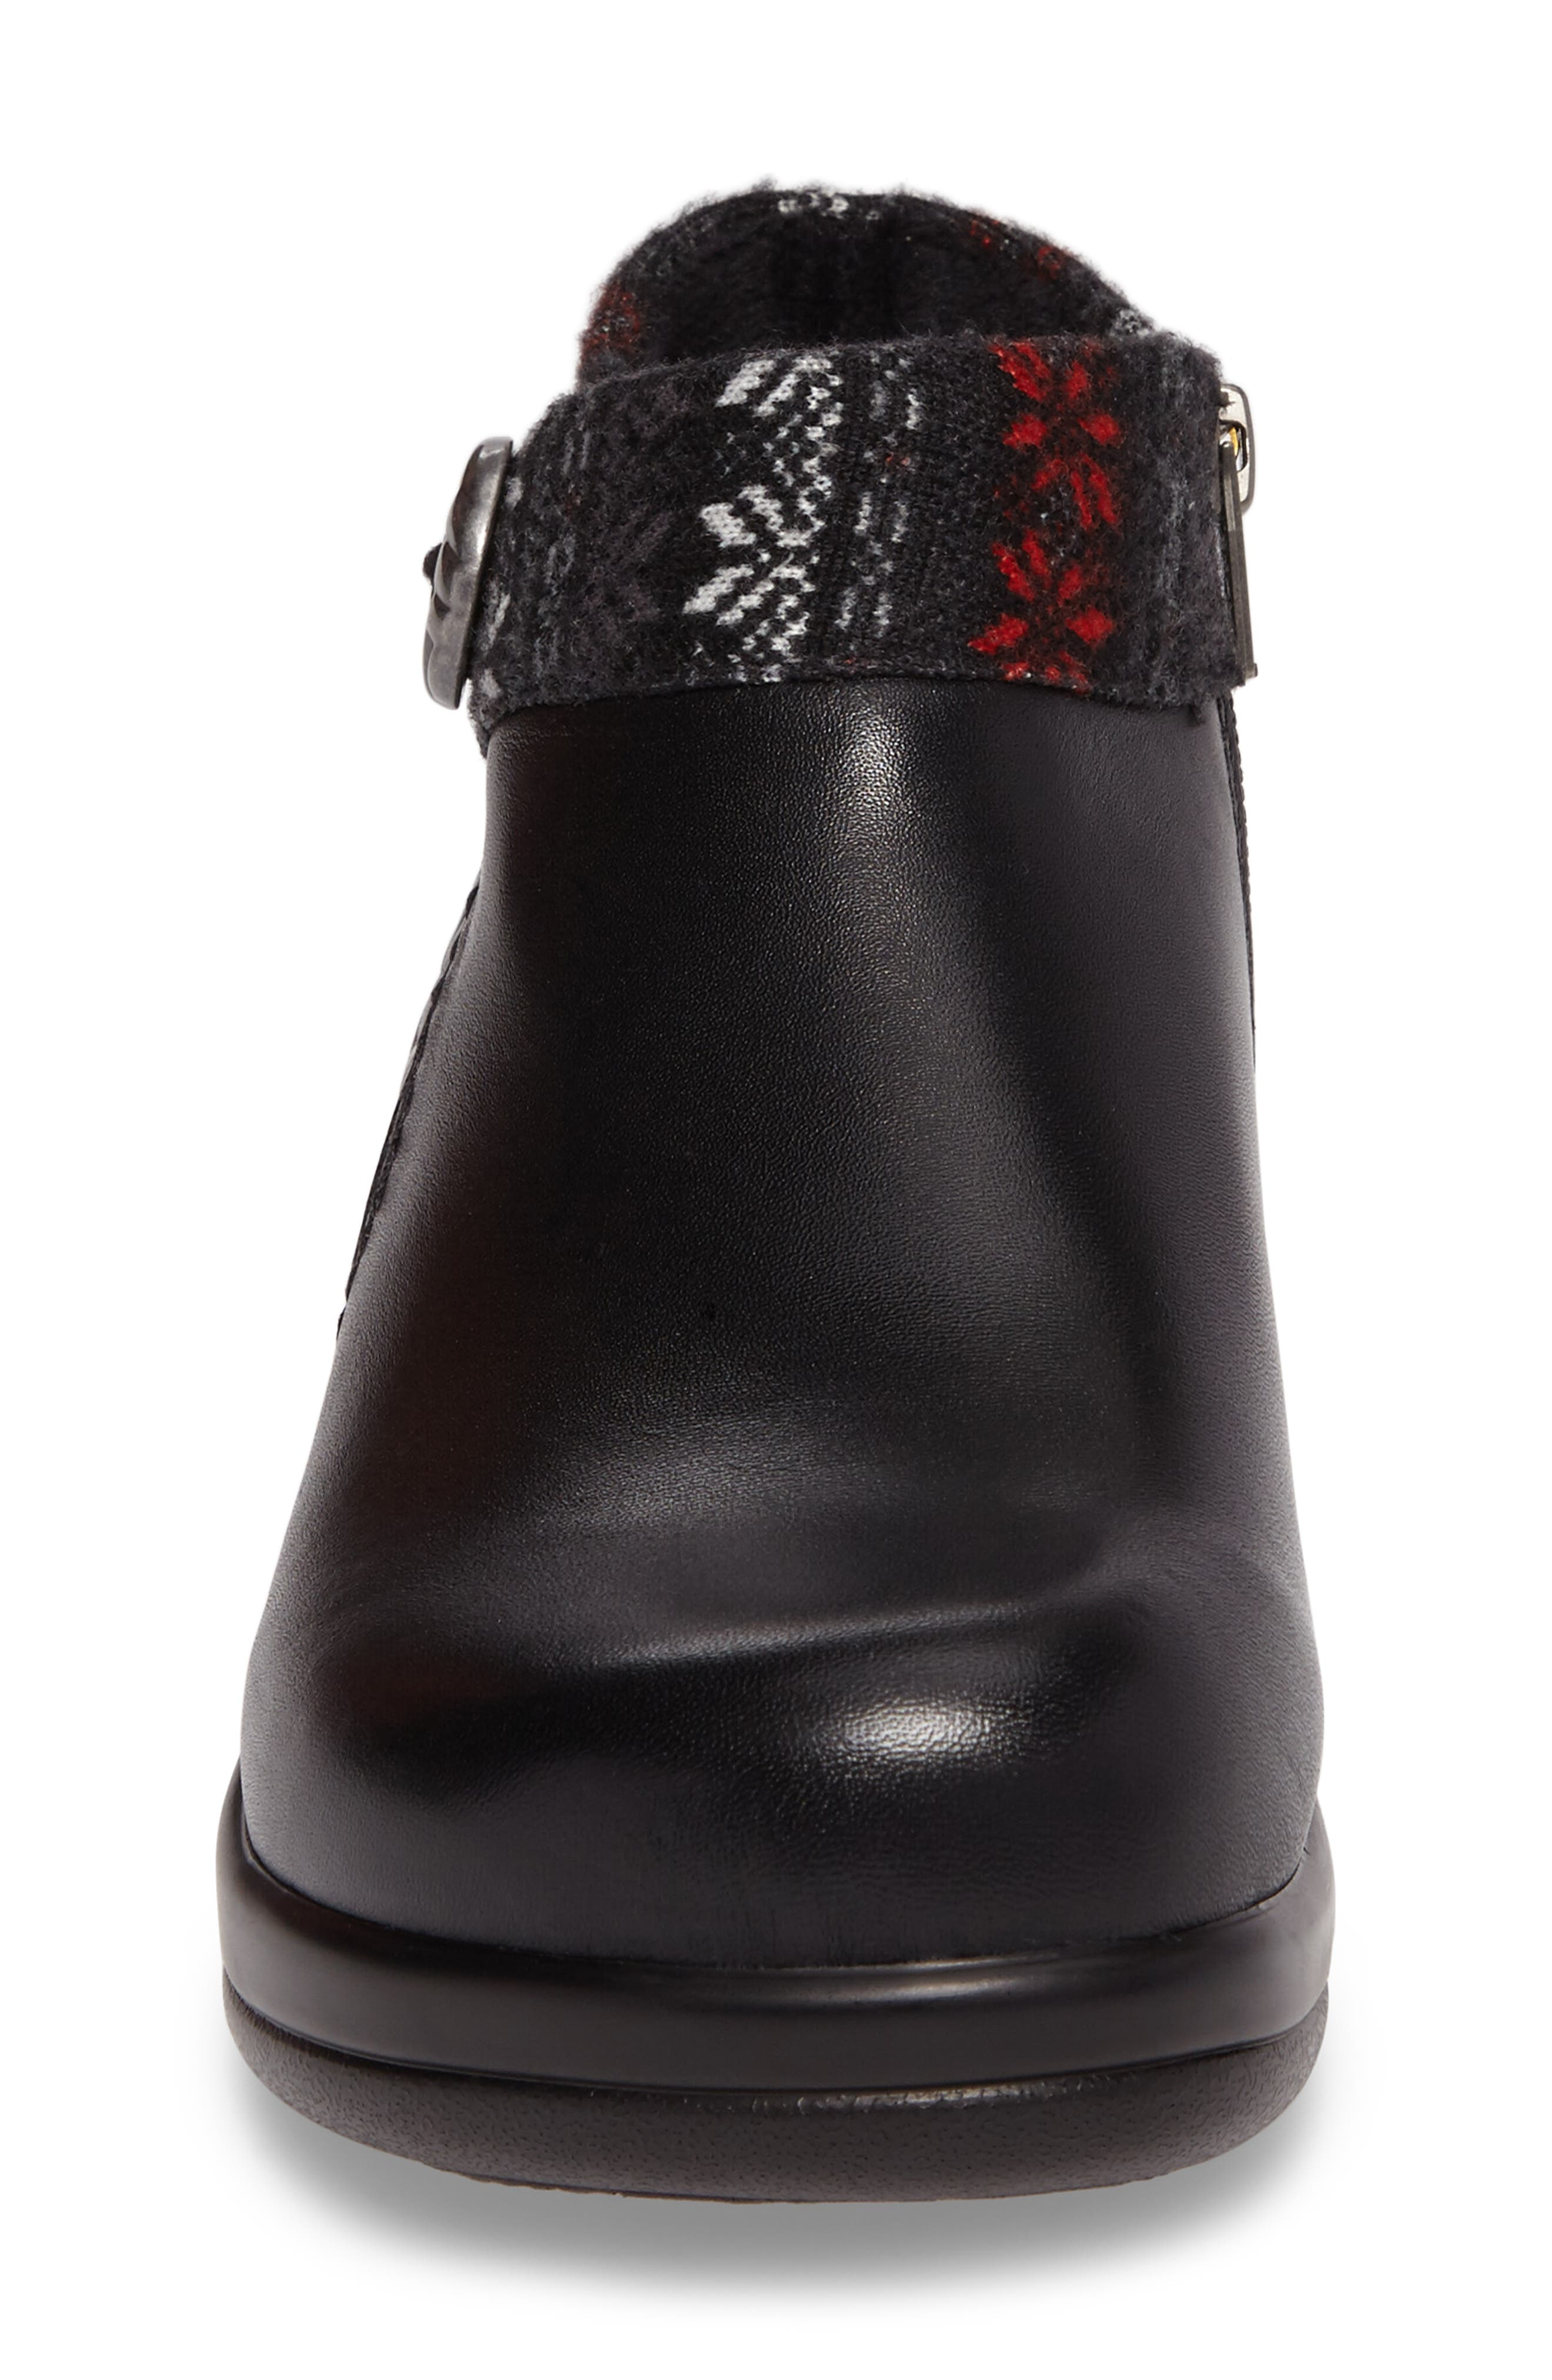 Sitka Knit Collar Bootie,                             Alternate thumbnail 4, color,                             002